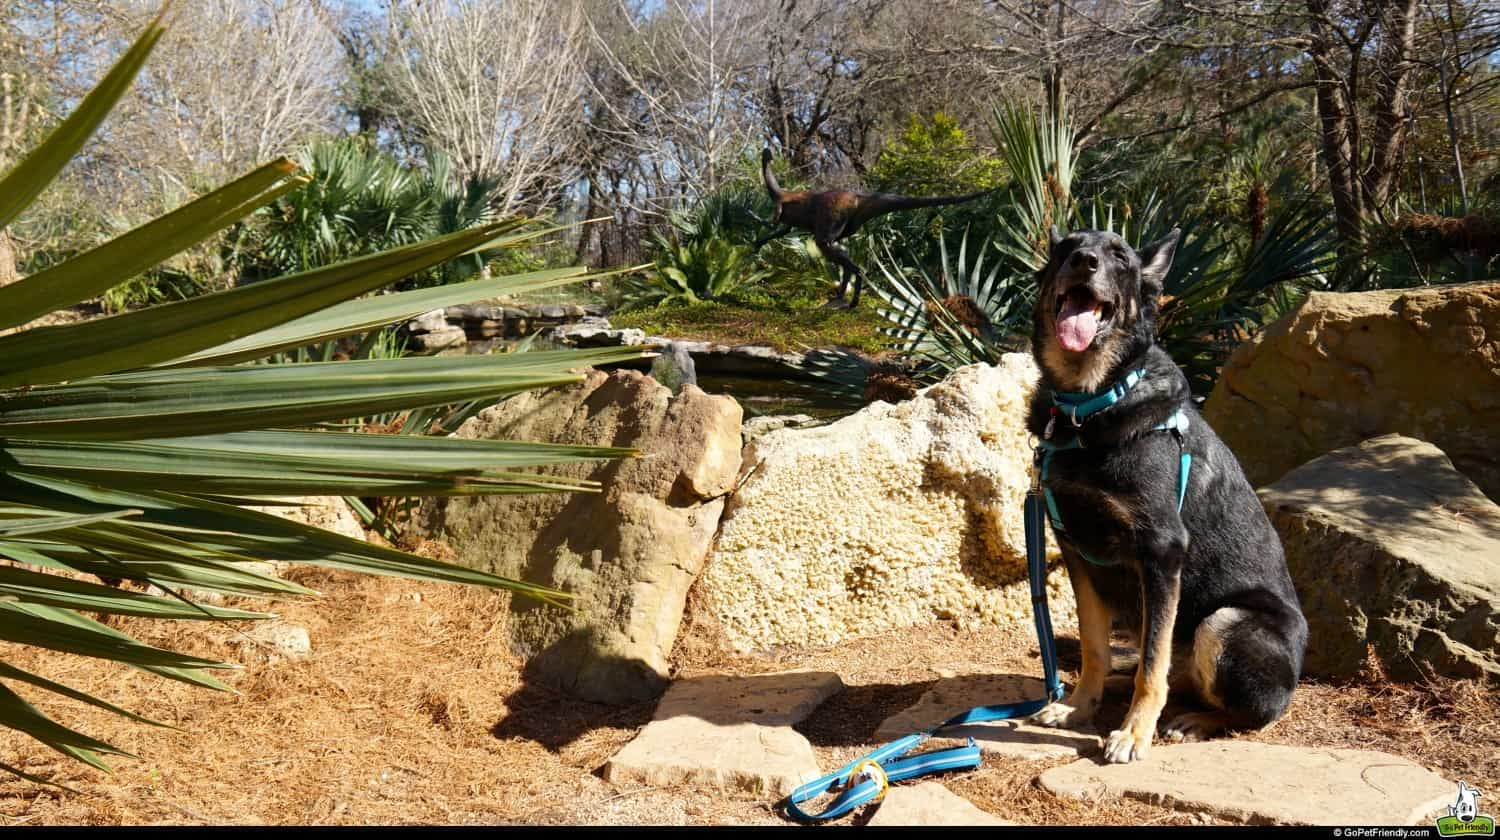 Dog Friendly: Zilker Botanical Garden in Austin